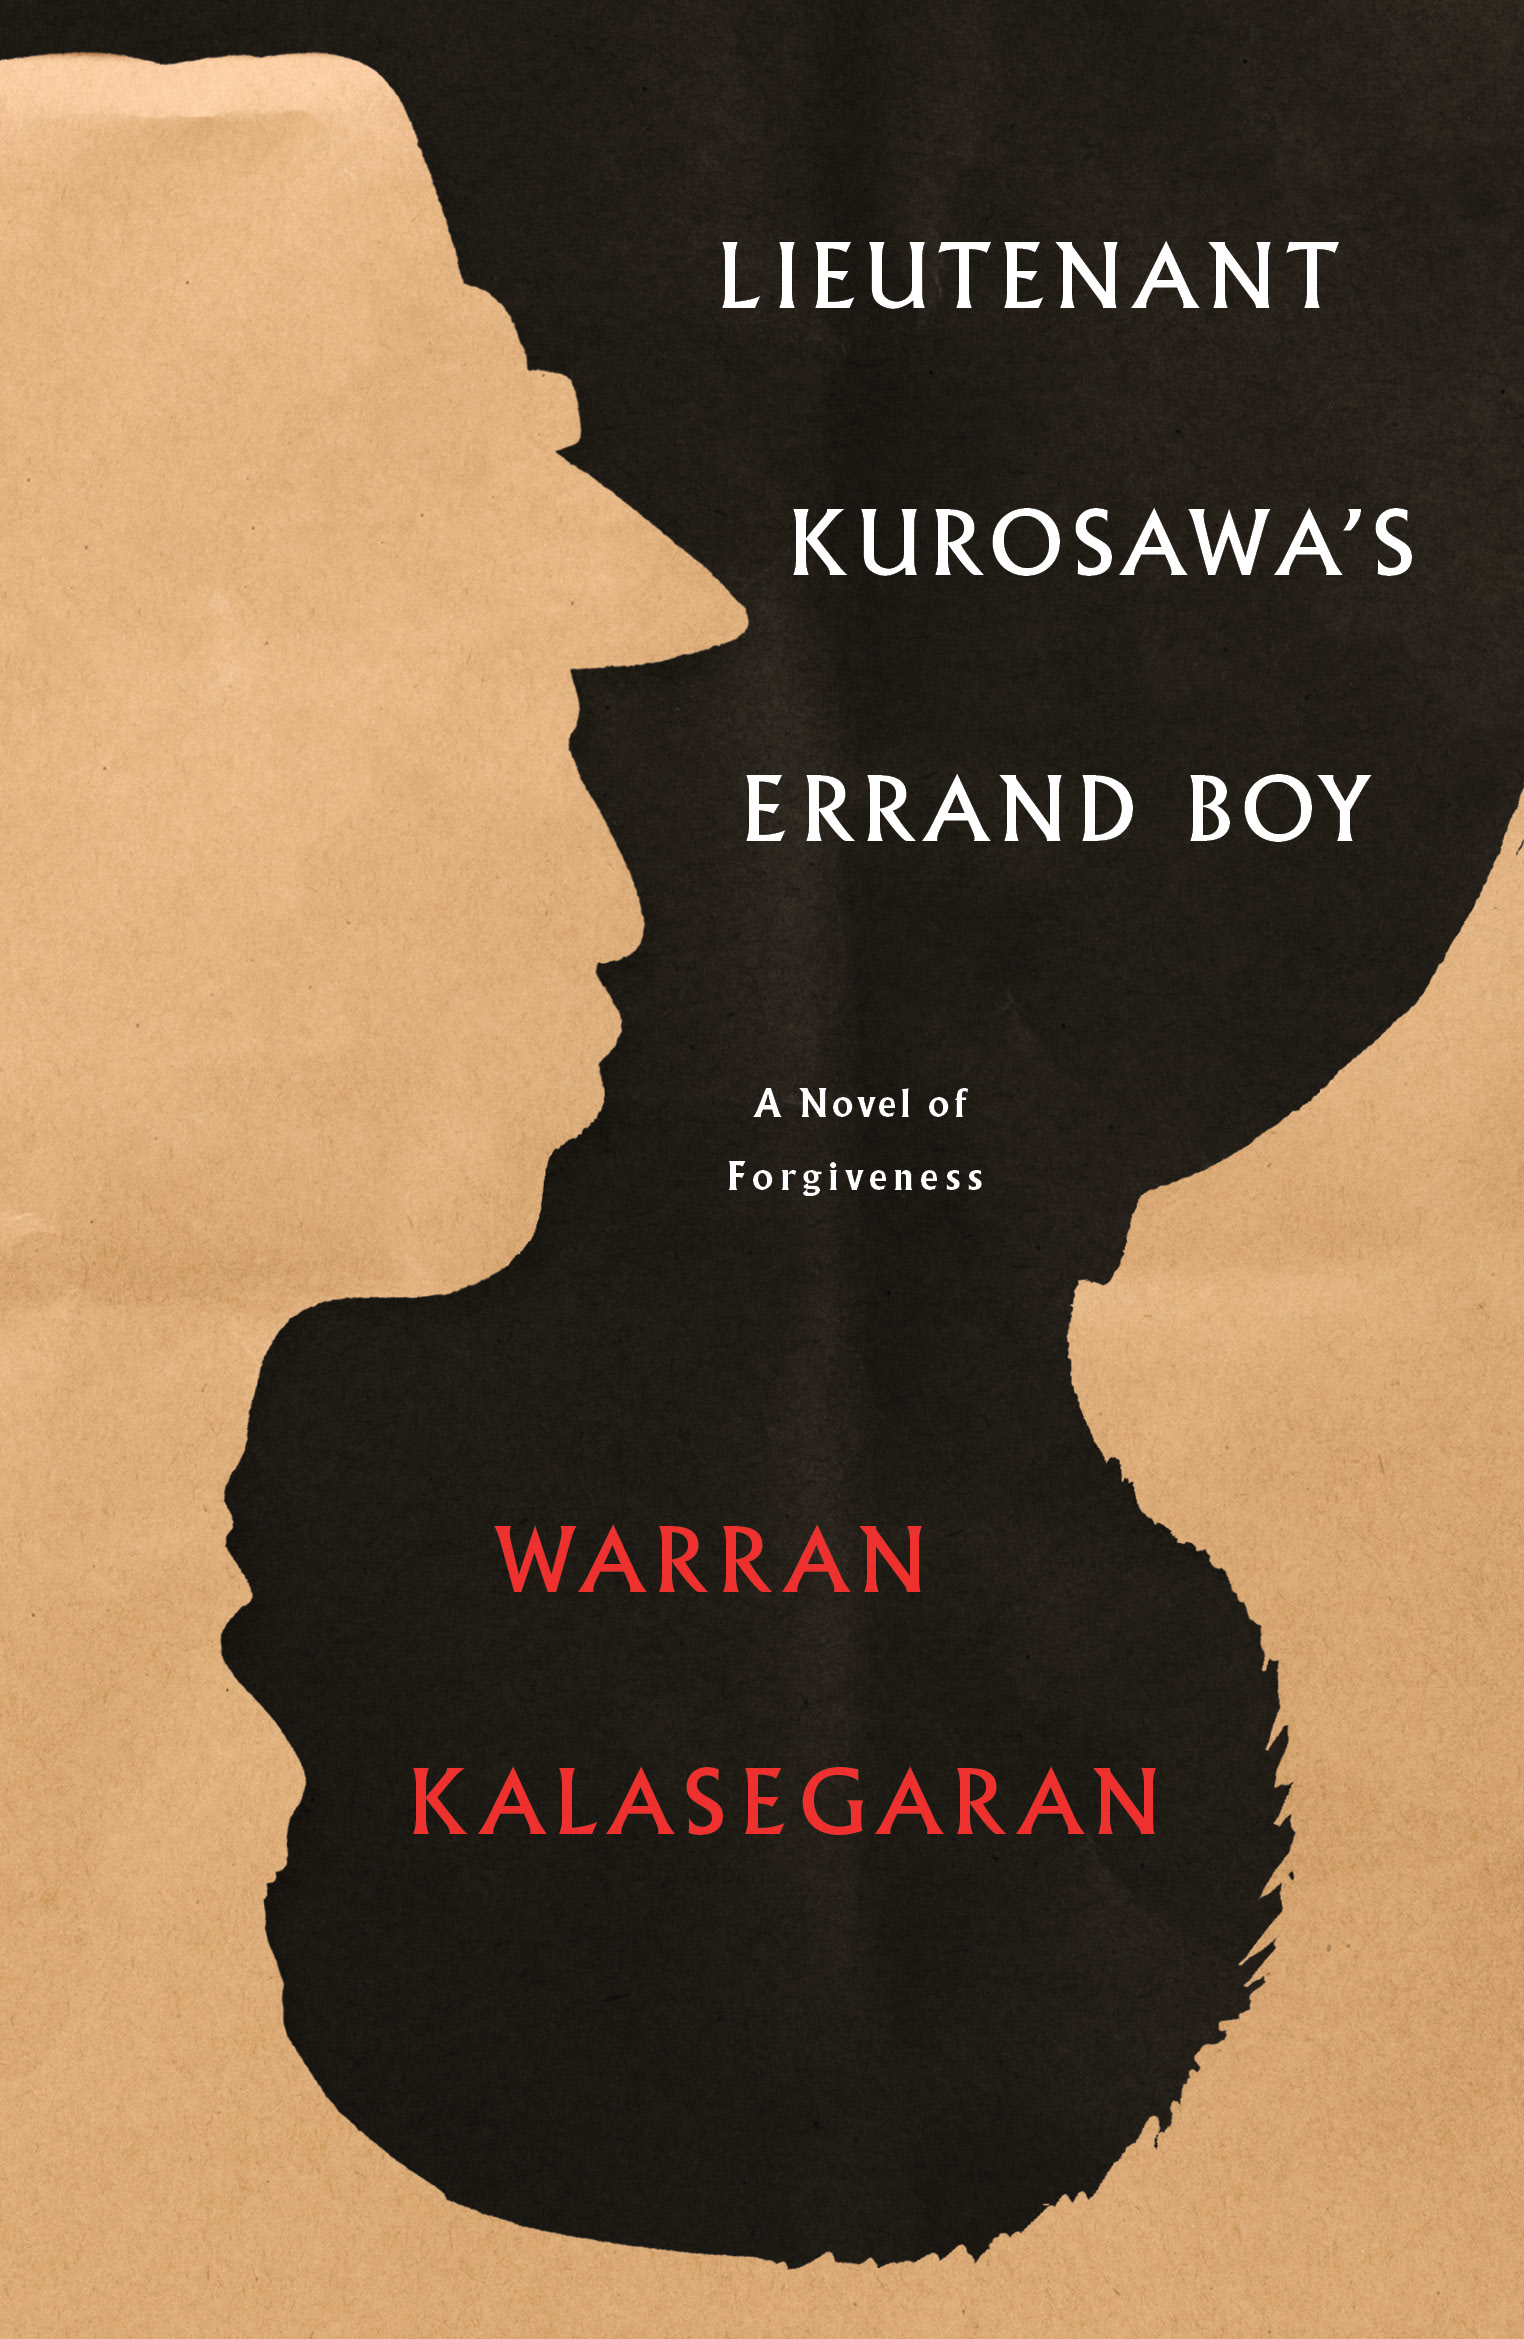 - LIEUTENANT KUROSAWA'S ERRAND BOYWarran KalasegaranDuring the Japanese Occupation of Singapore, an eight-year old boy, separated from his father, is forced by his new military police boss, Lieutenant Kurosawa Takeshi of the Kempeitai, to mimic his cruelties to his hapless captives. When the unbelievable happens — Emperor Hirohito's 1945 radio broadcast of Japan's surrender — how does the Lieutenant, the former striding victor now vanquished, rebuild his shattered life and seek forgiveness from the boy he brutalised?£10Historical fiction978-1-91-209858-3July 2018ORDER THE BOOK HERE